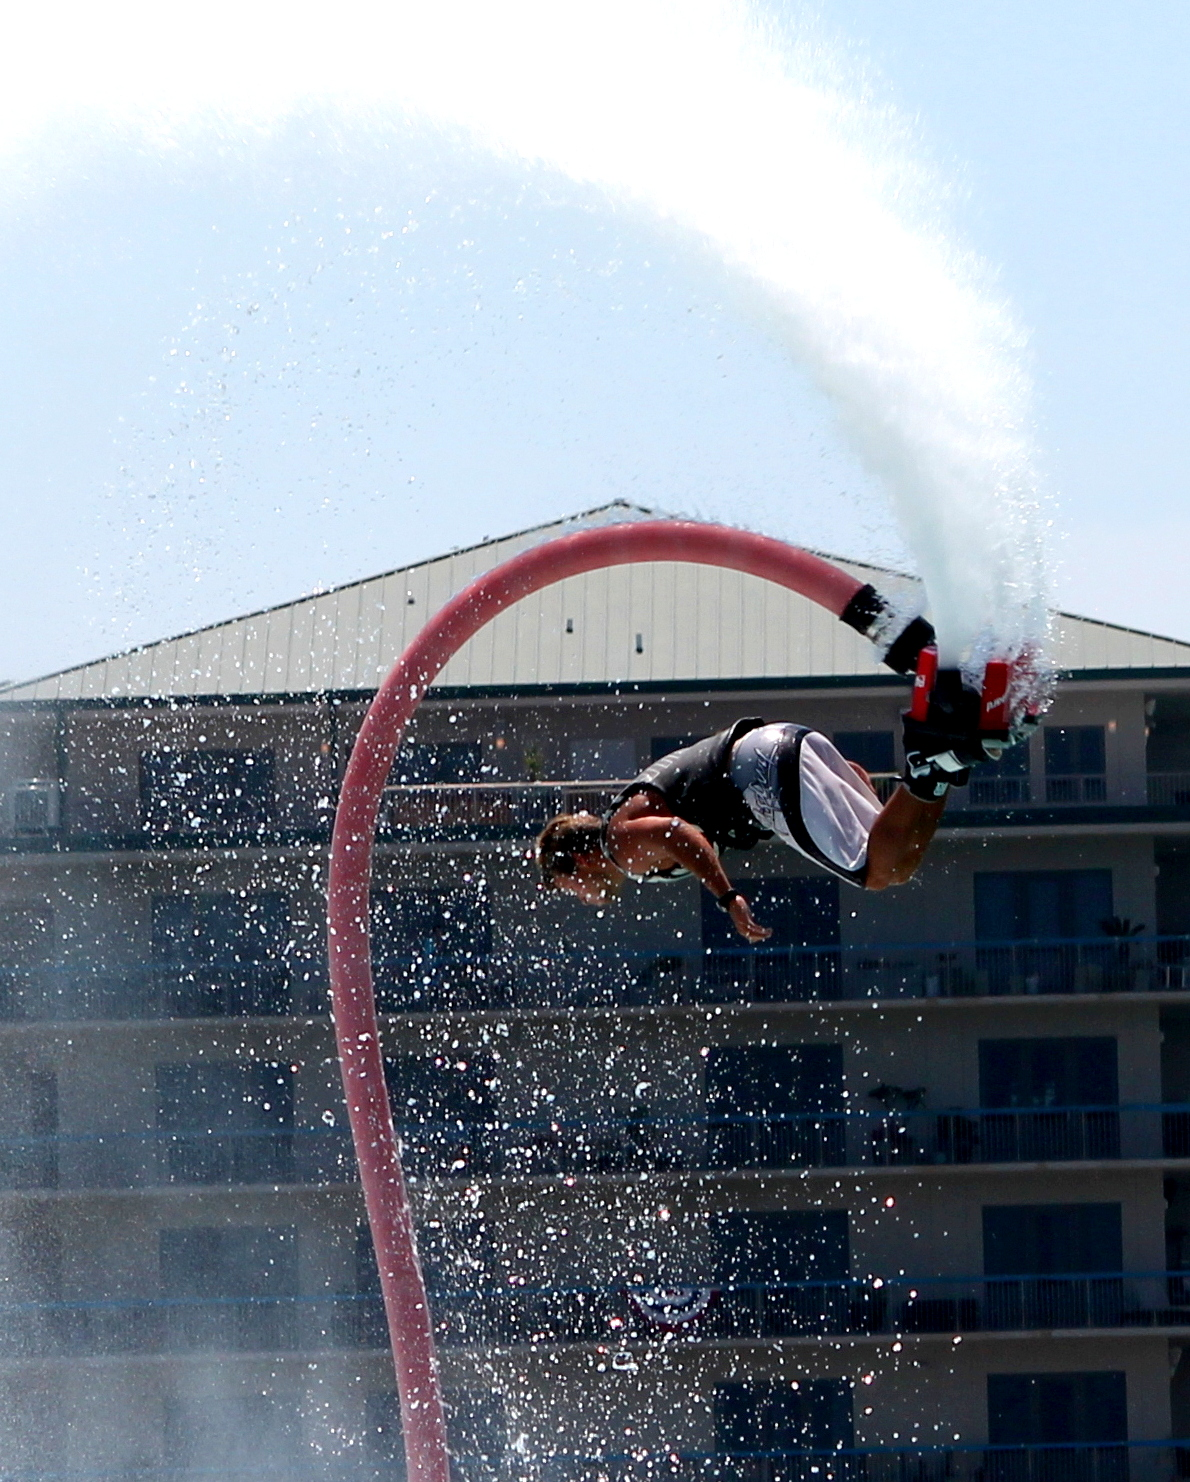 Flyboarder spinning in the air propelled by a water jetpack